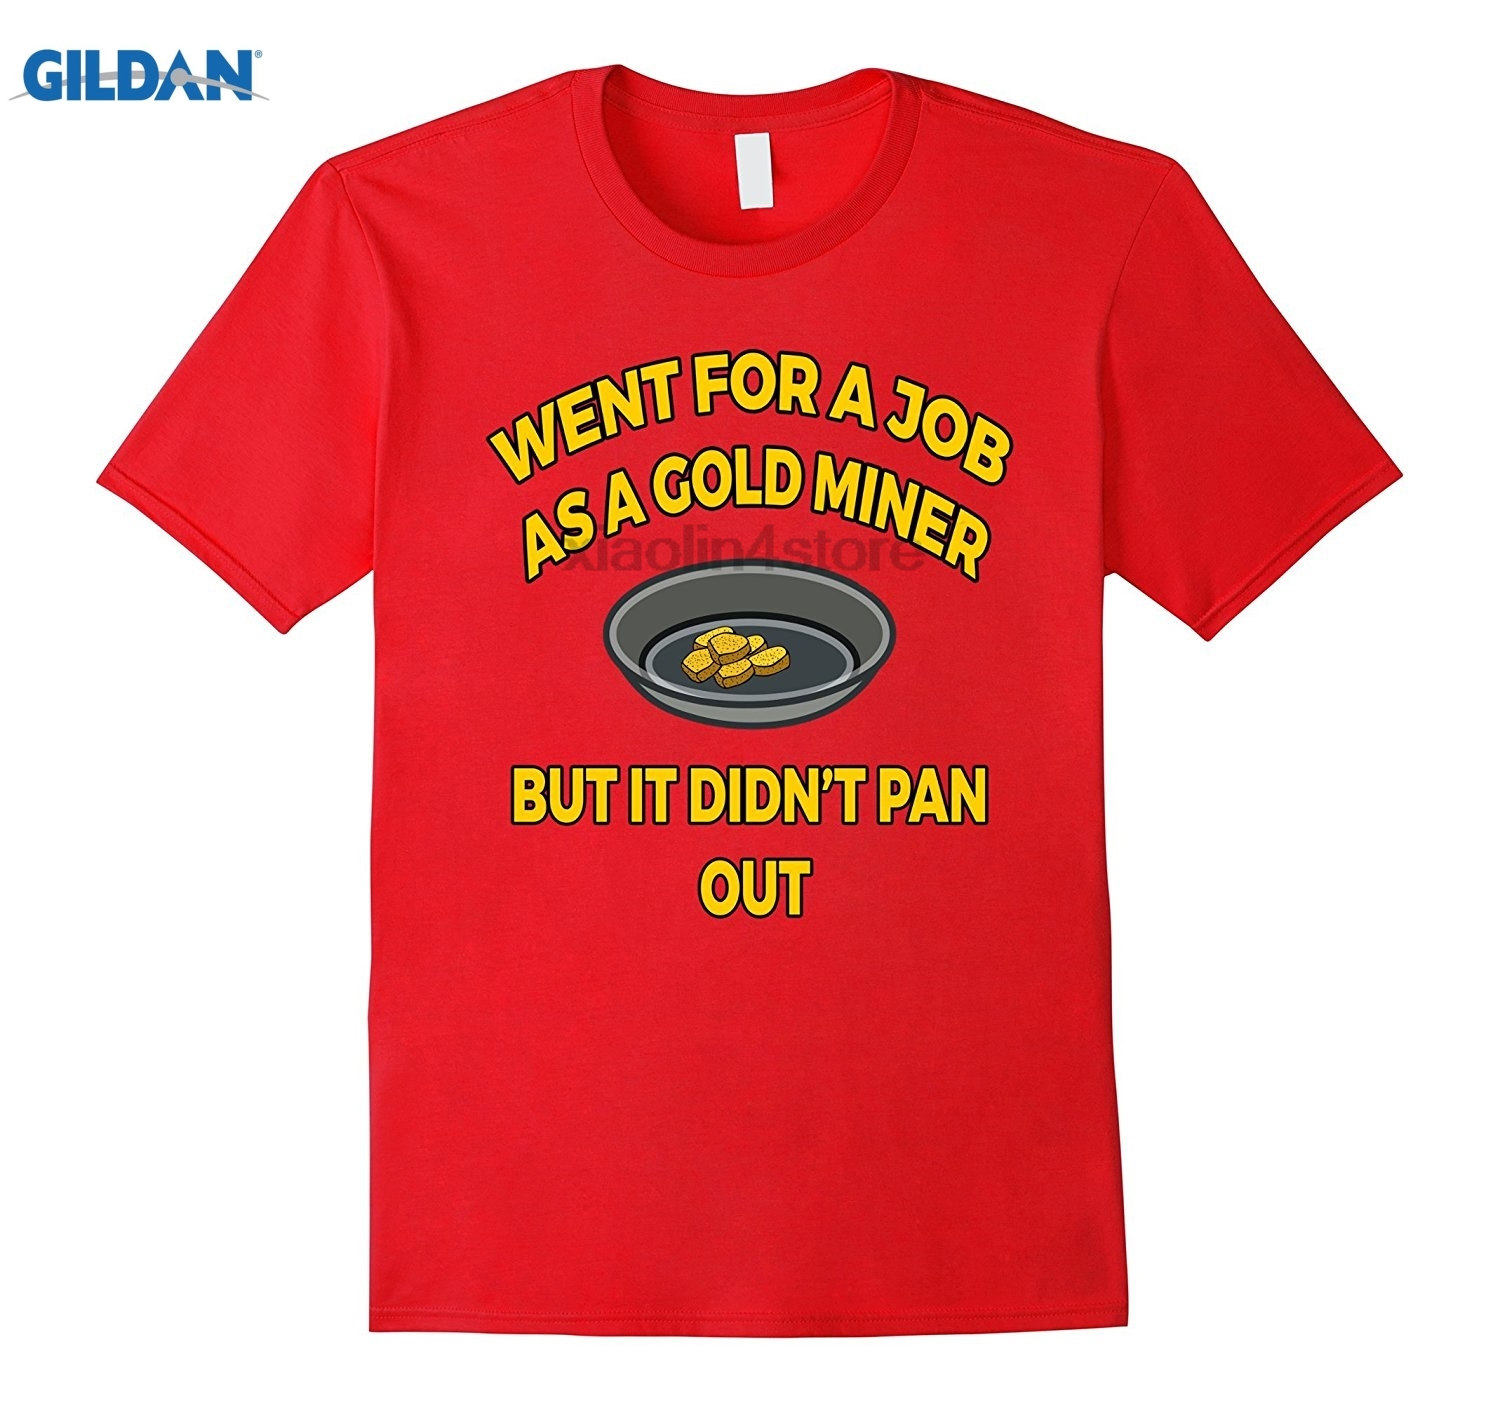 GILDAN Gold Panning T Shirt Funny Gift for Panners Fun T-Shirt Mens Print Casual 100% Cotton T-Shirt Popular